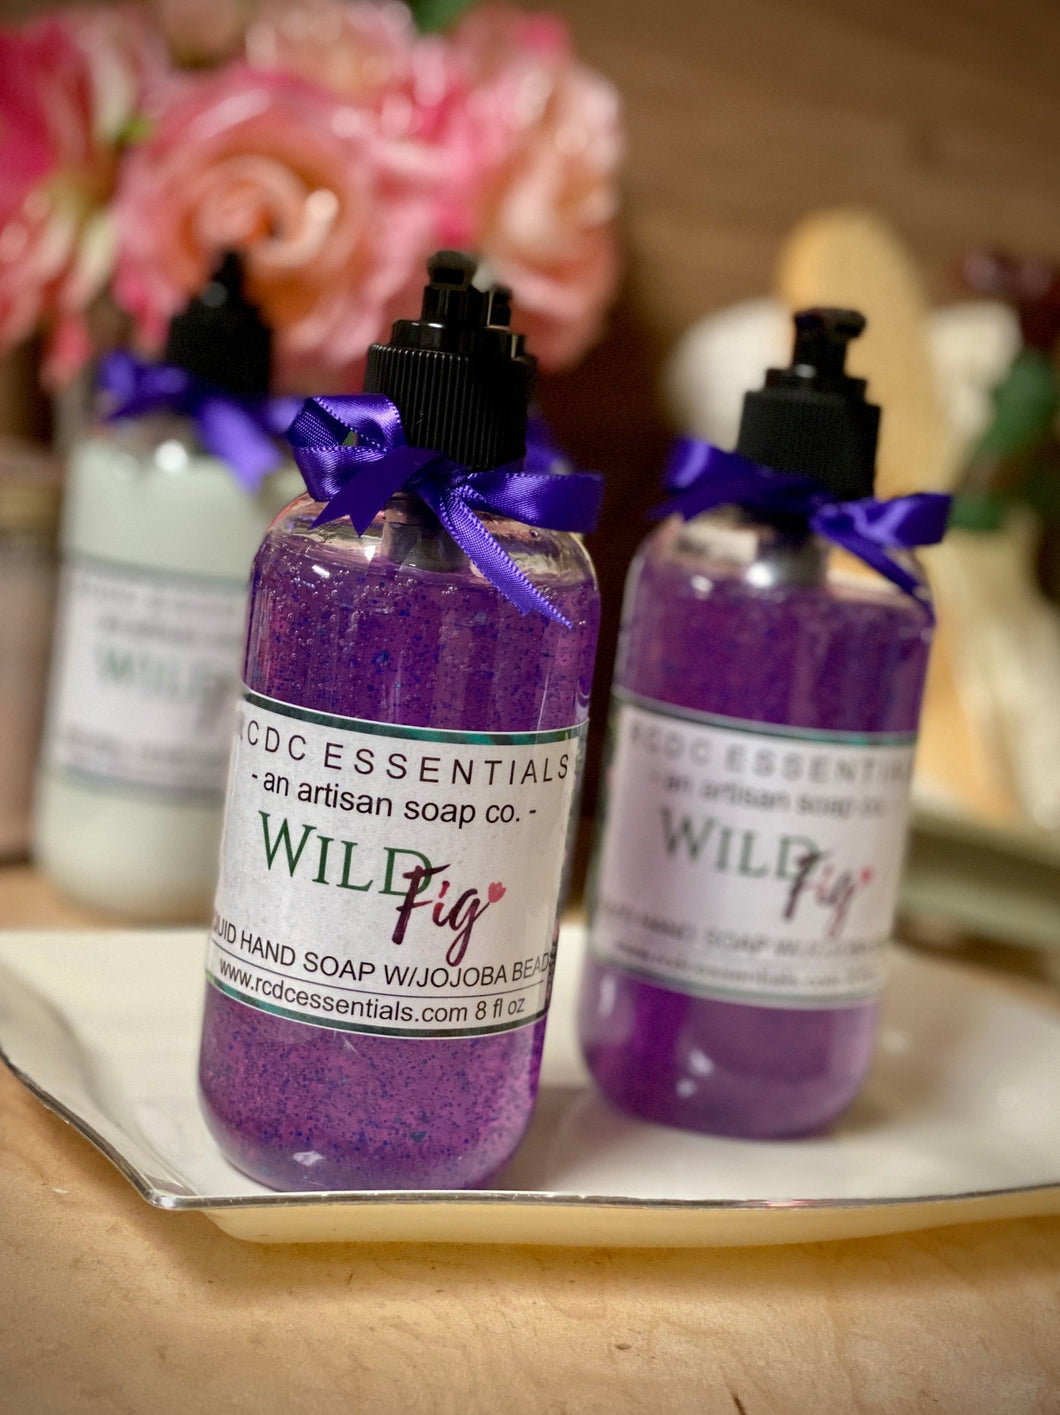 Wild Fig~ Liquid Hand Soap W/Jojoba Beads